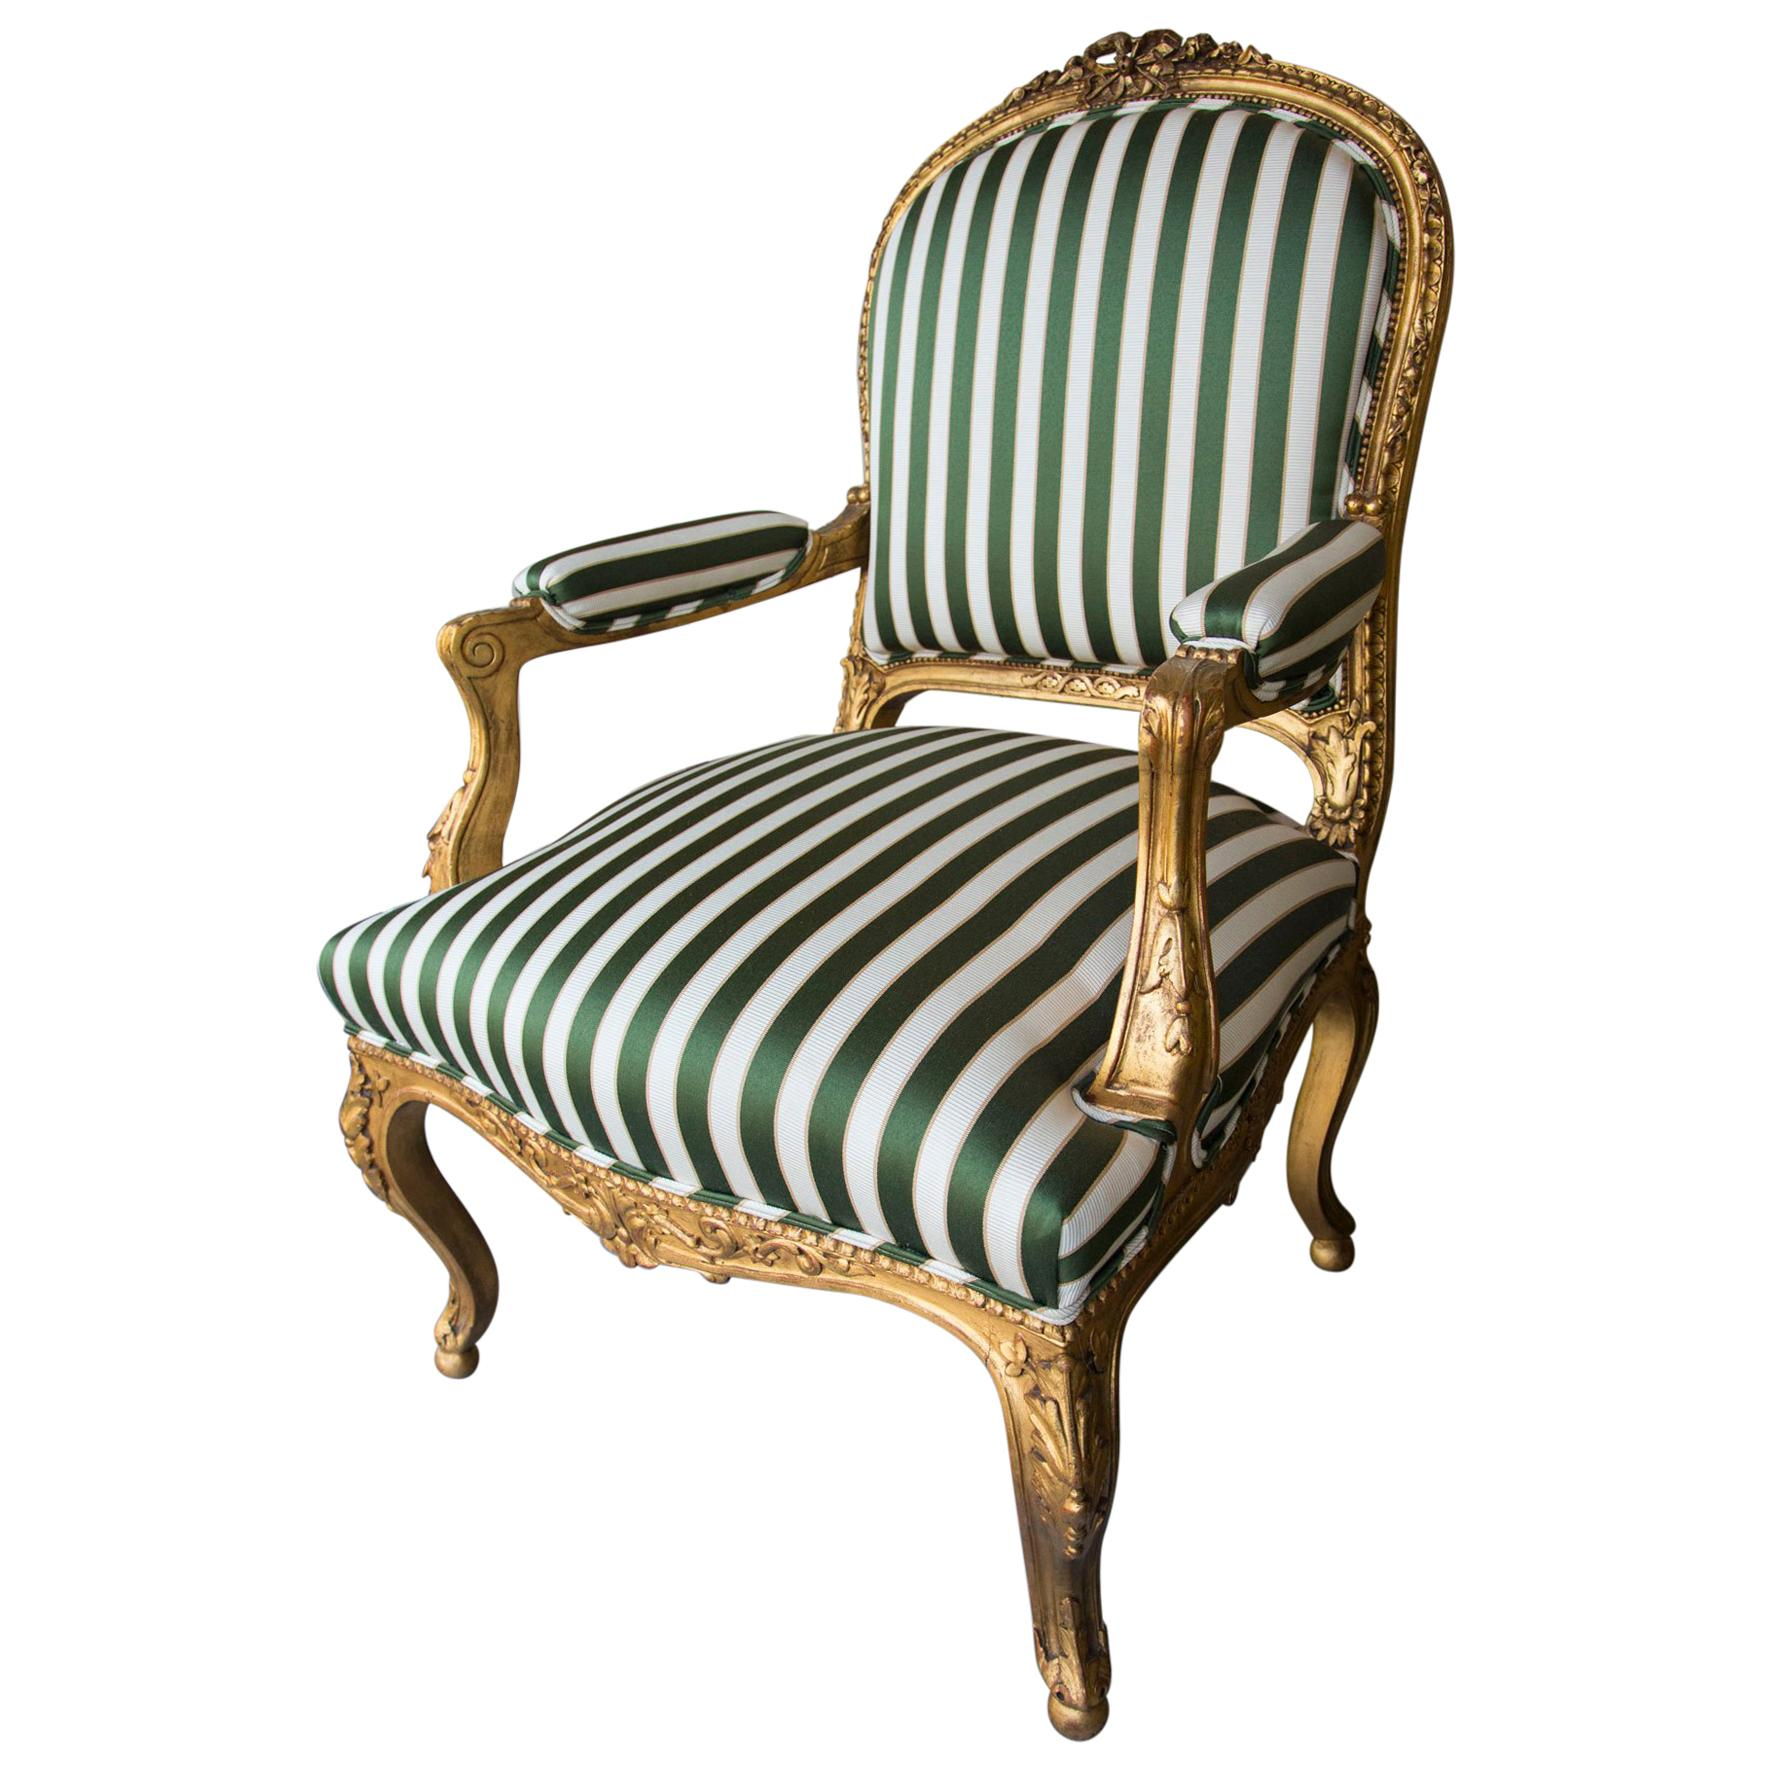 Pair of Giltwood Louis XV Style Fauteuils